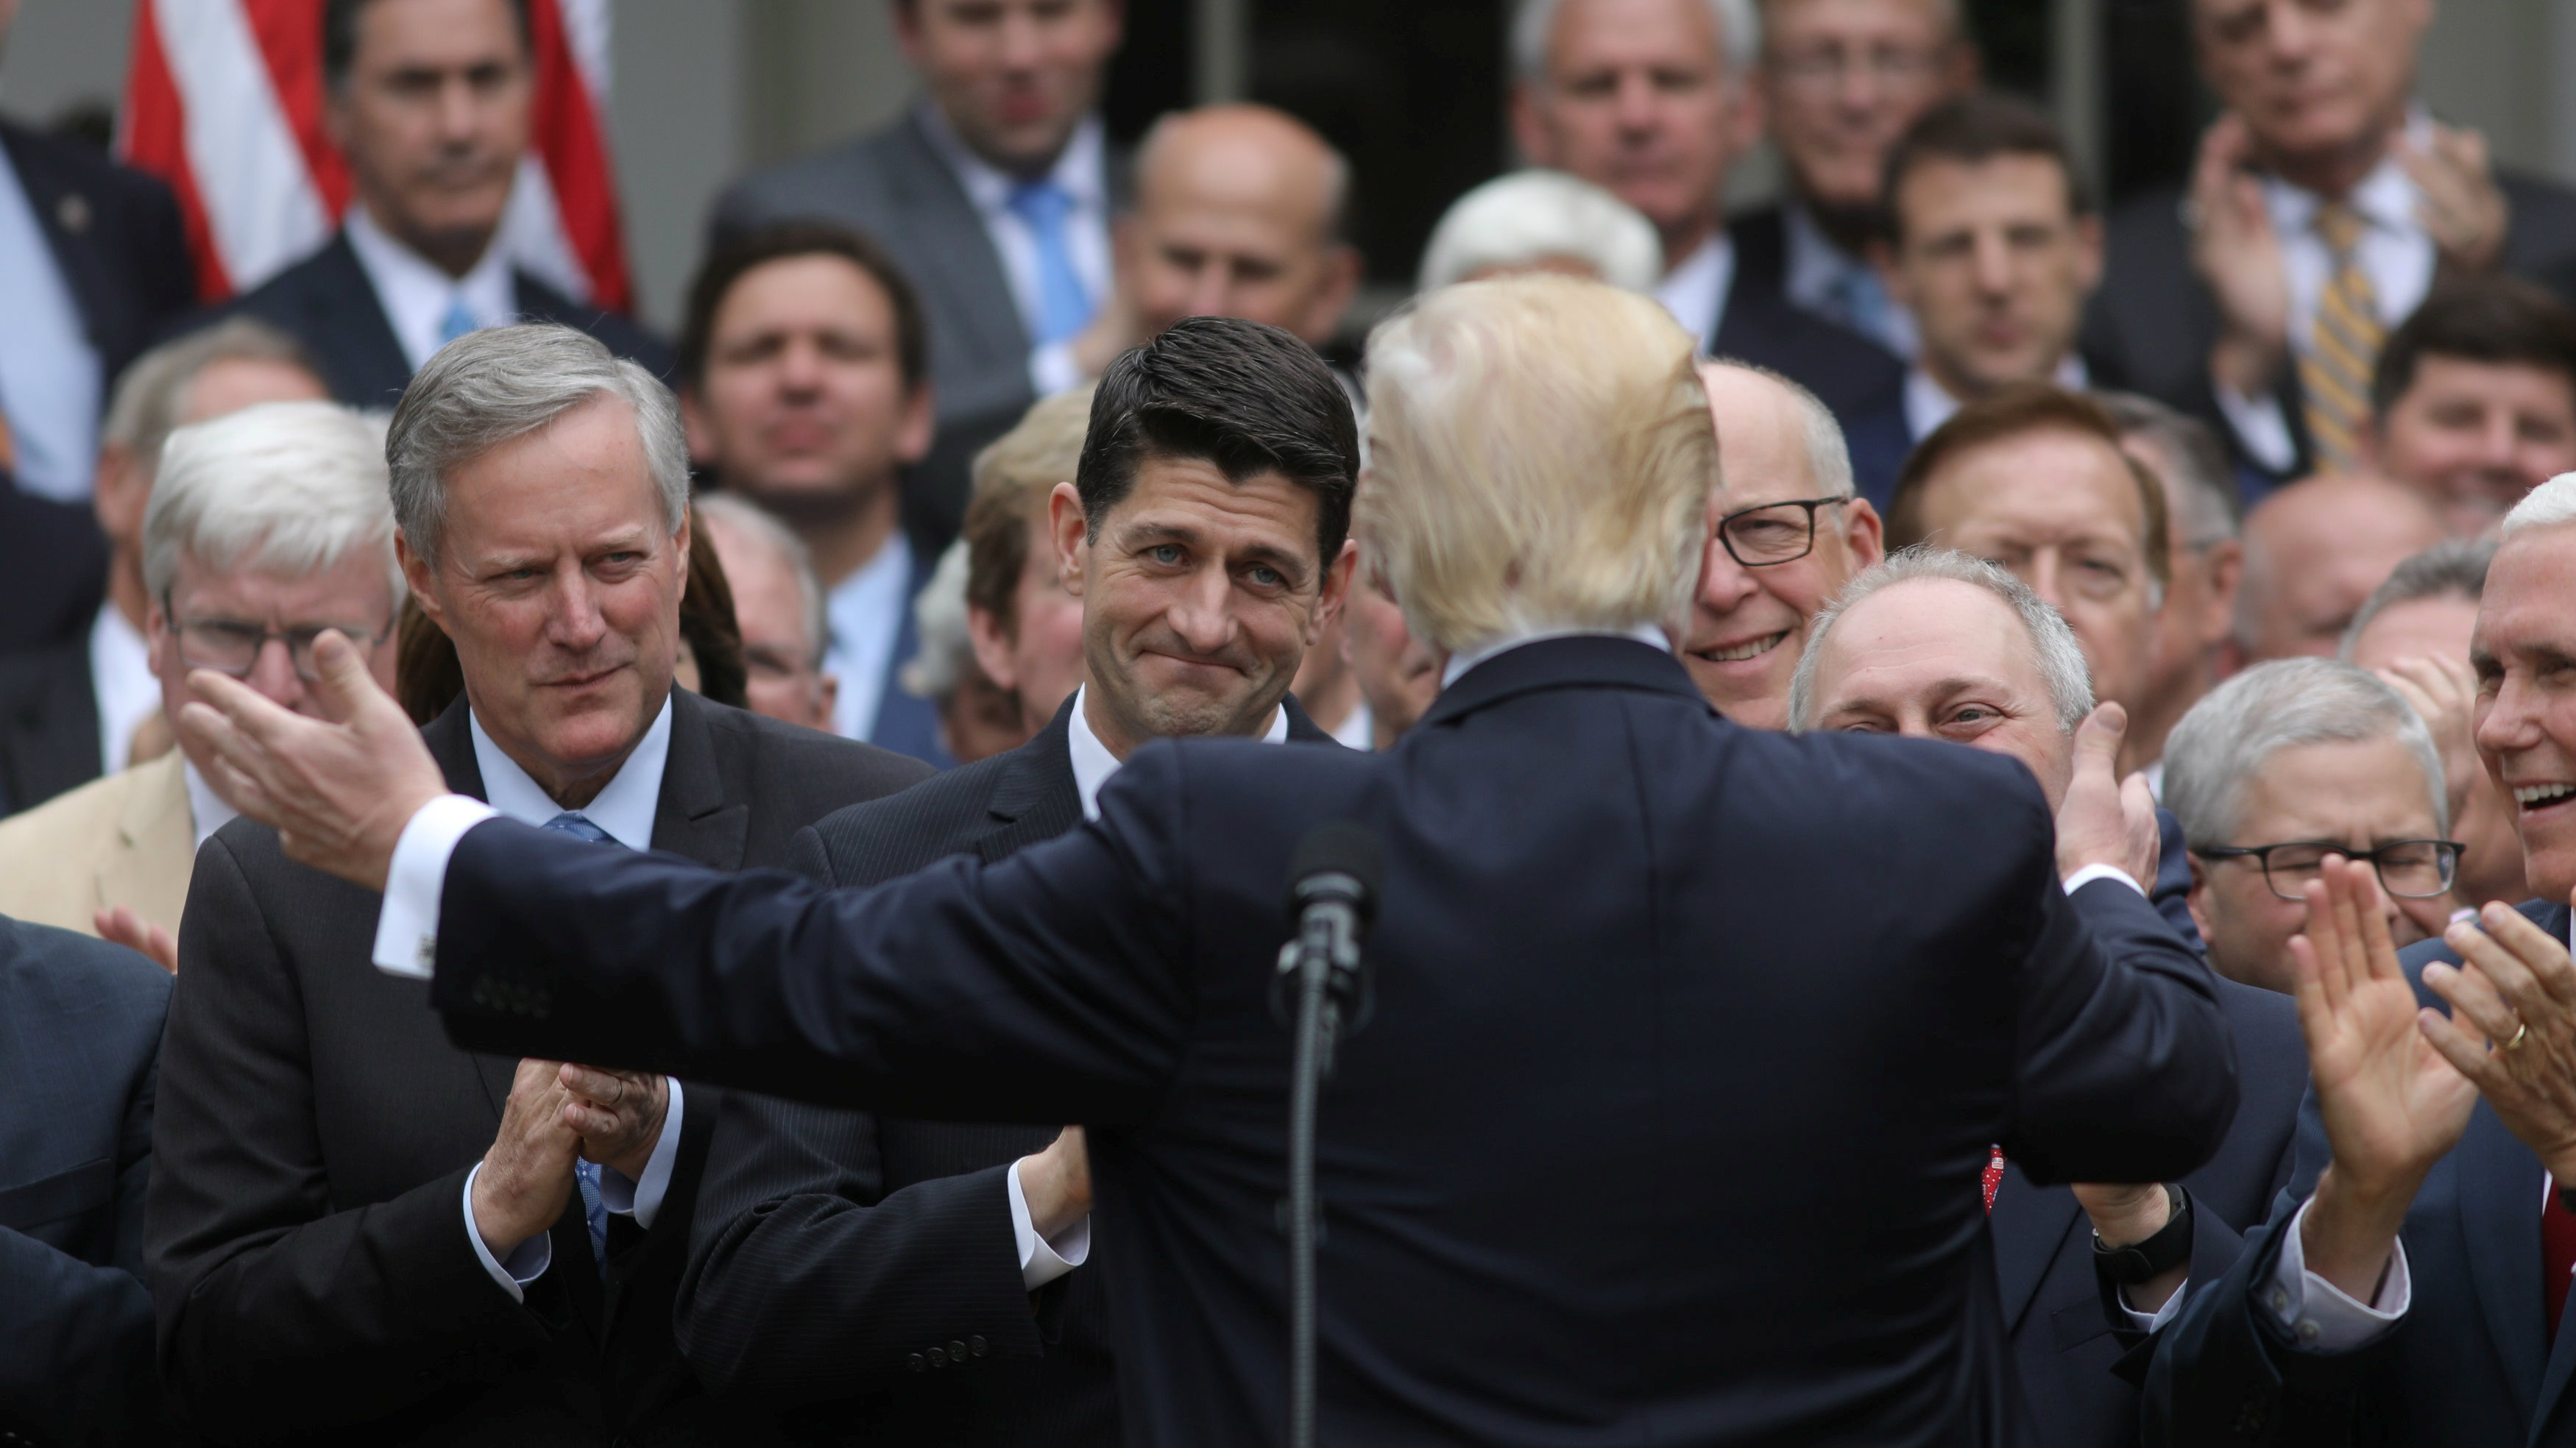 U.S. President Donald Trump (C) turns to House Speaker Paul Ryan (3rdL) as he gathers with Congressional Republicans in the Rose Garden of the White House after the House of Representatives approved the American Healthcare Act, to repeal major parts of Obamacare and replace it with the Republican healthcare plan, in Washington, U.S., May 4, 2017. REUTERS/Carlos Barria TPX IMAGES OF THE DAY